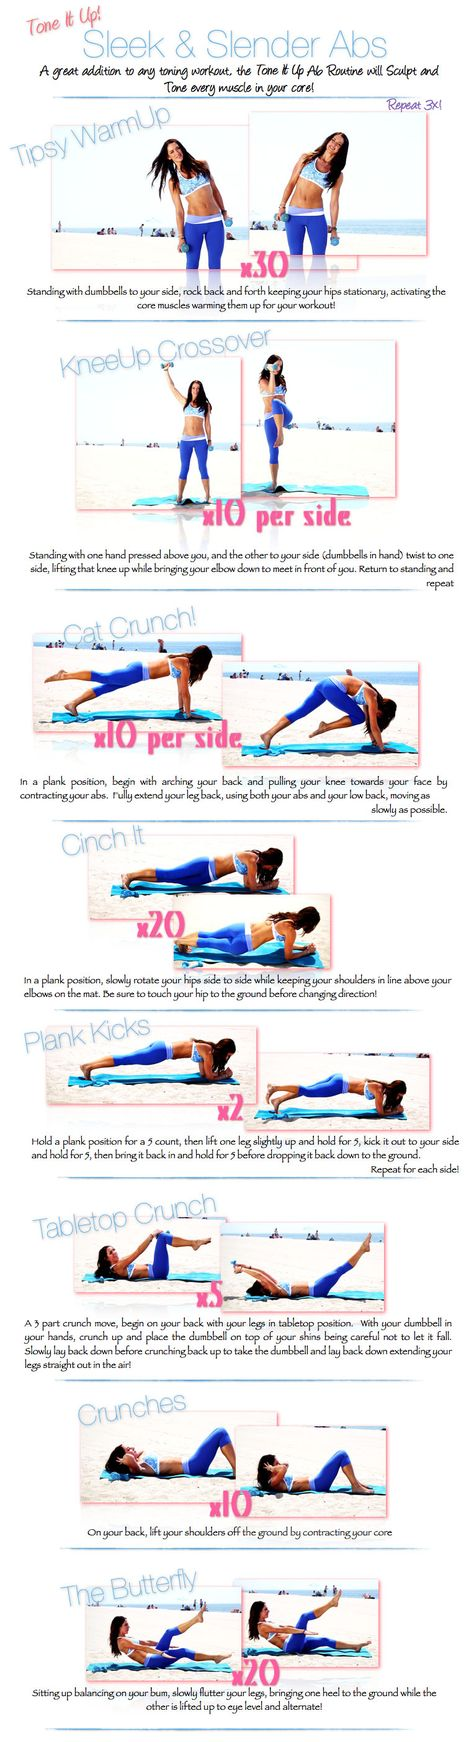 Join Karena from ToneItUp.com as she takes you through her Sleek & Slender ab routine!